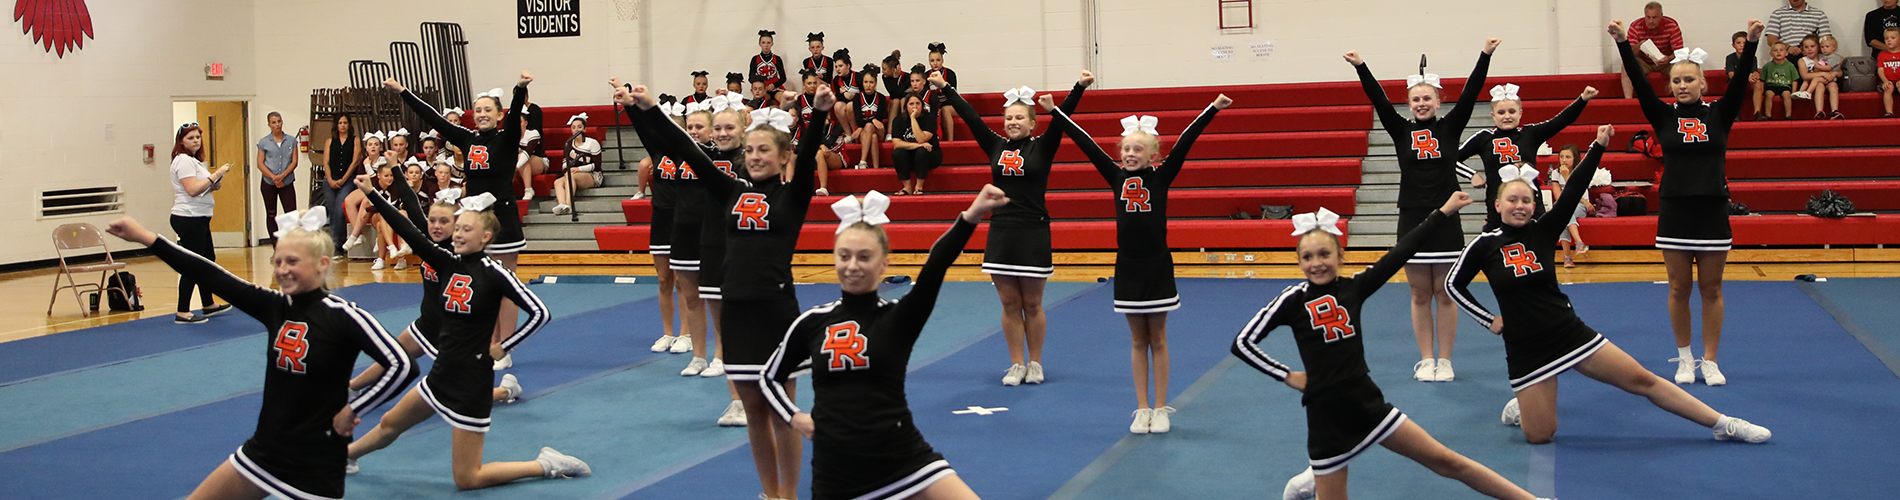 Competitive cheer members finish their routine.